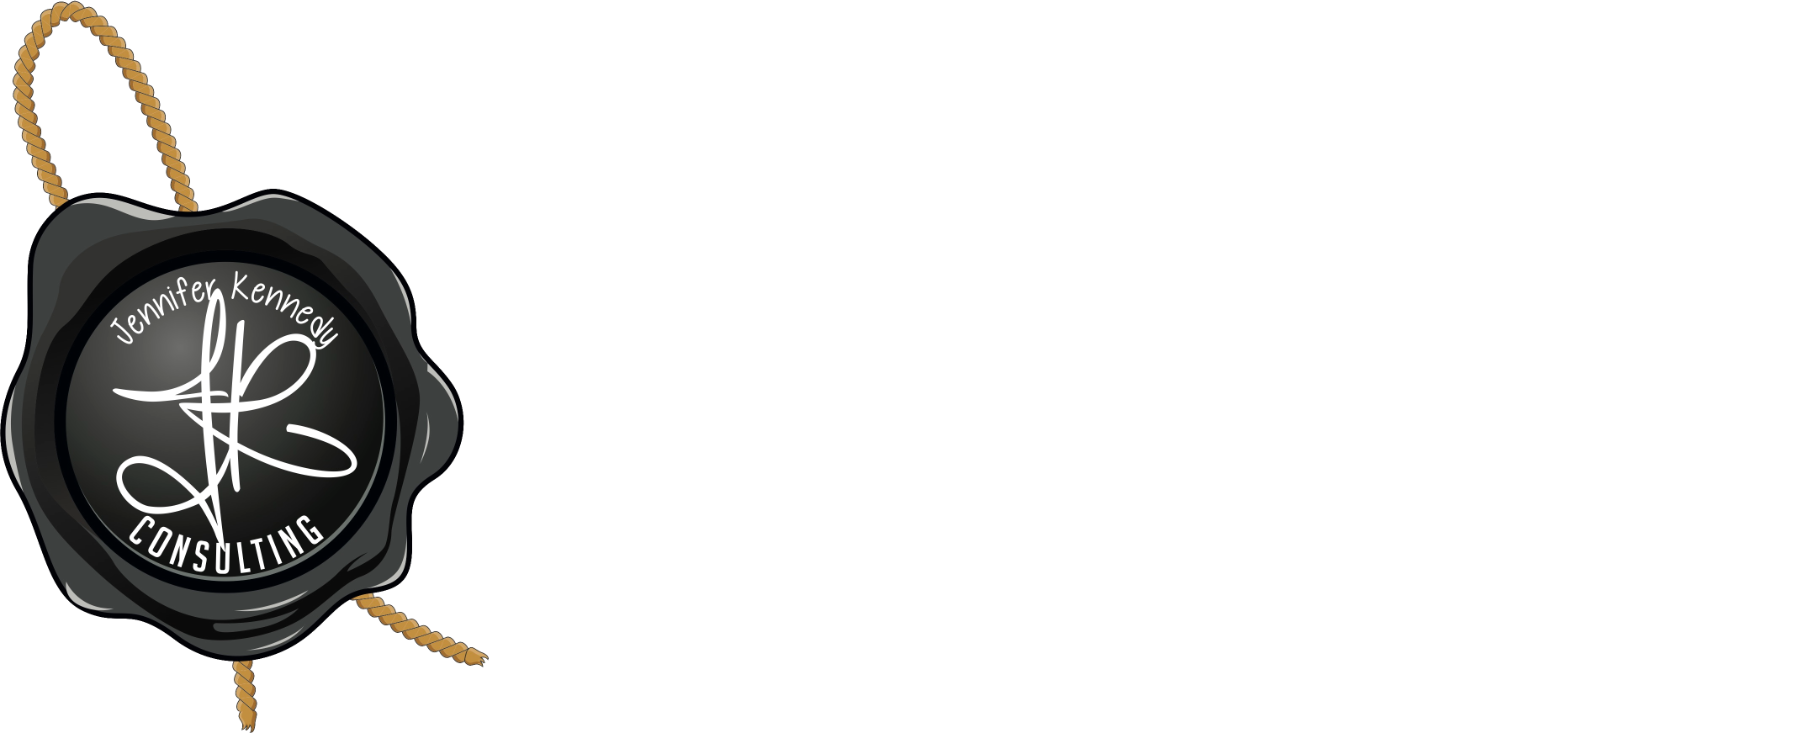 jkconsulting.ie